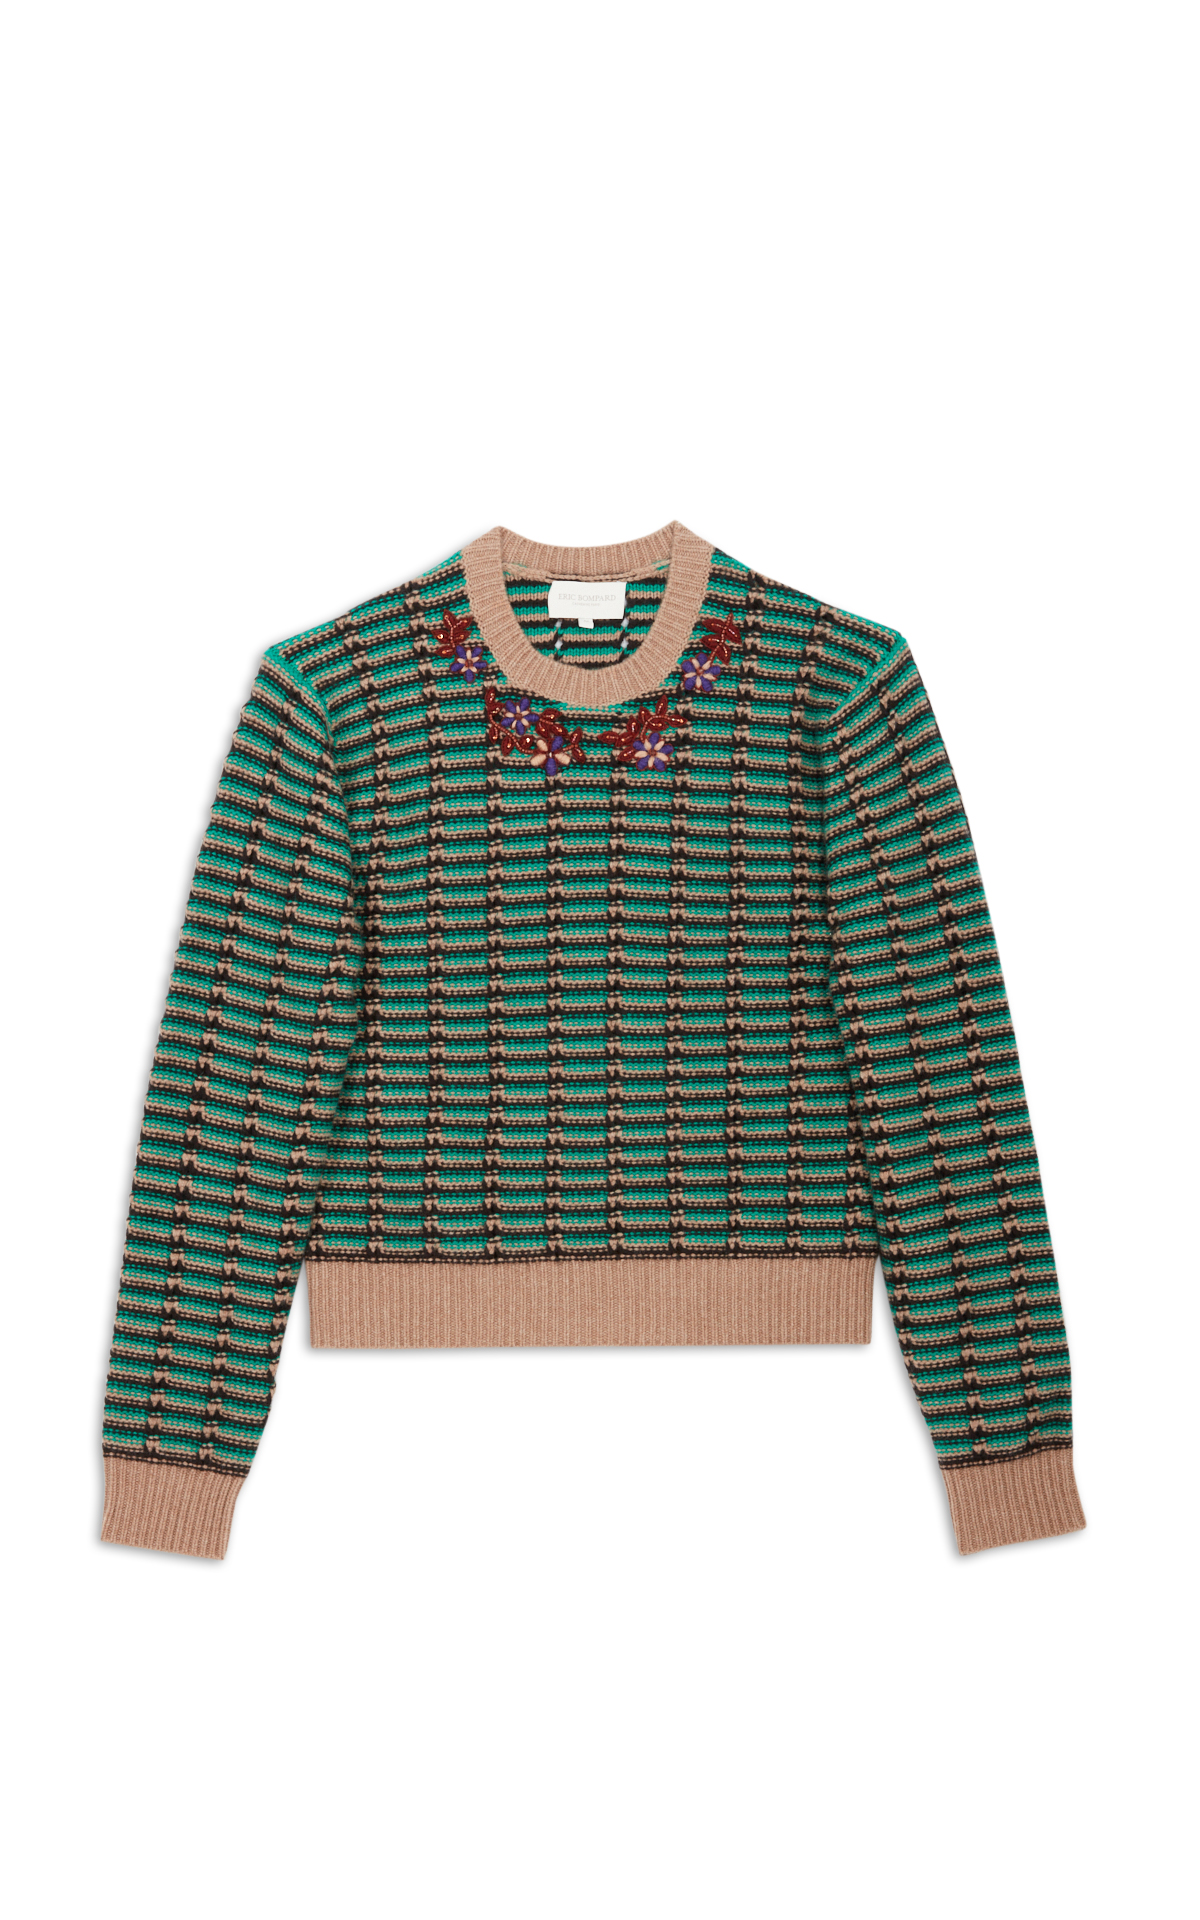 Eric Bompard green and camel jumper la vallée village